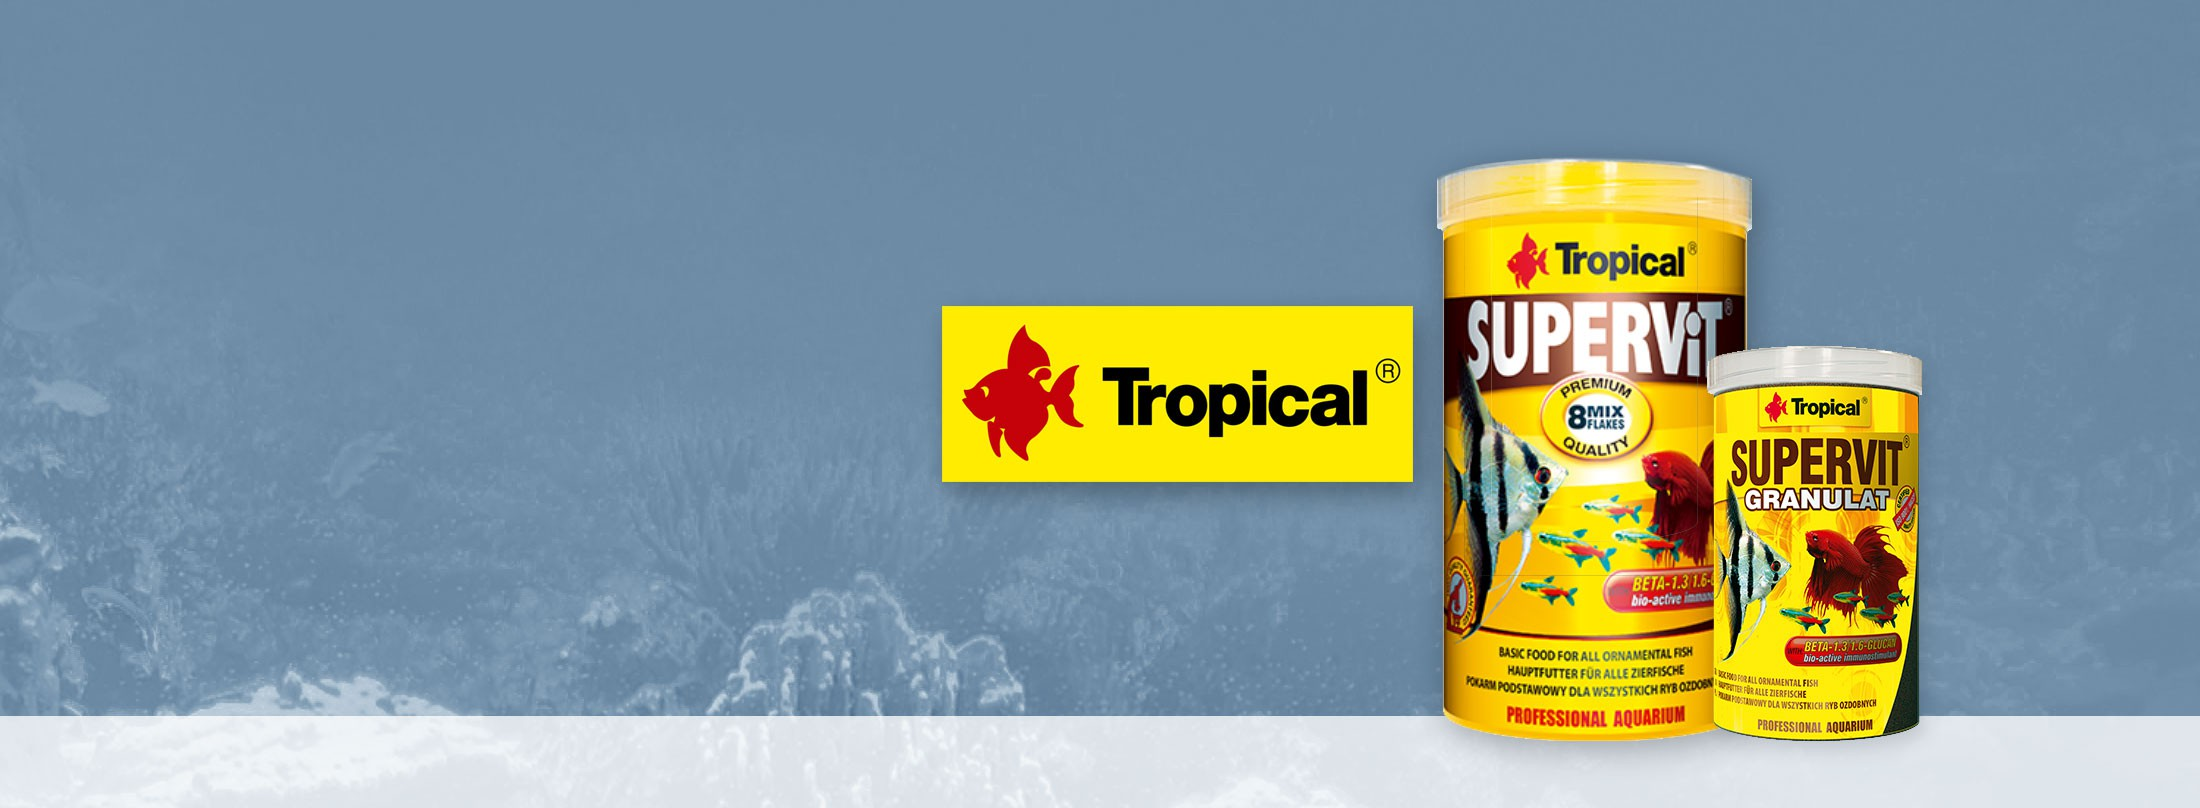 TROPICAL SUPERVIT